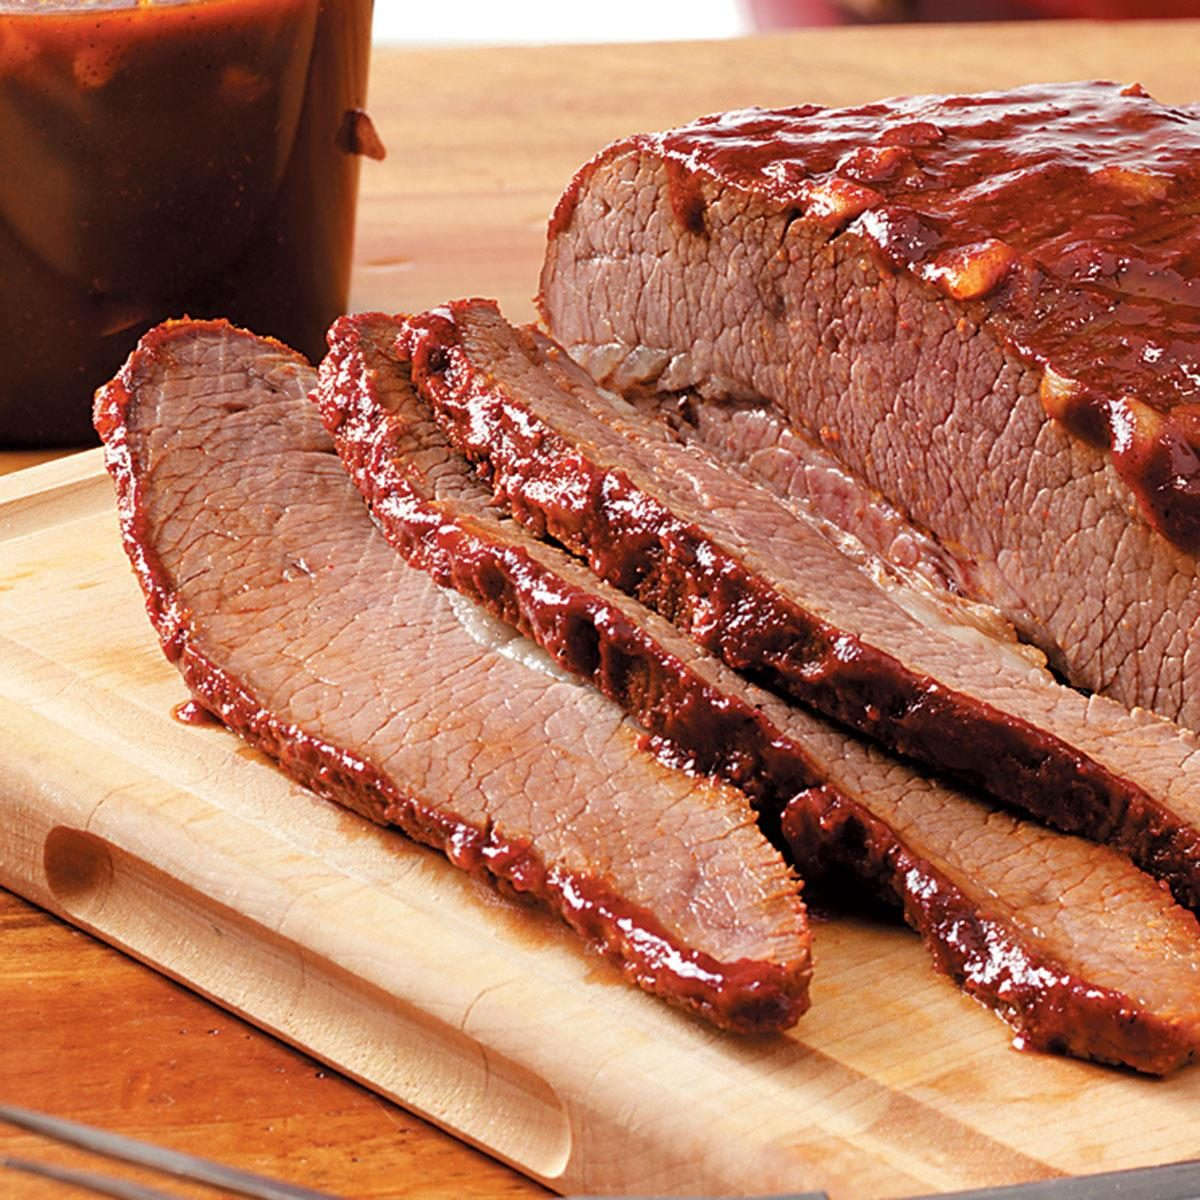 louisiana barbecue brisket recipe taste of home. Black Bedroom Furniture Sets. Home Design Ideas